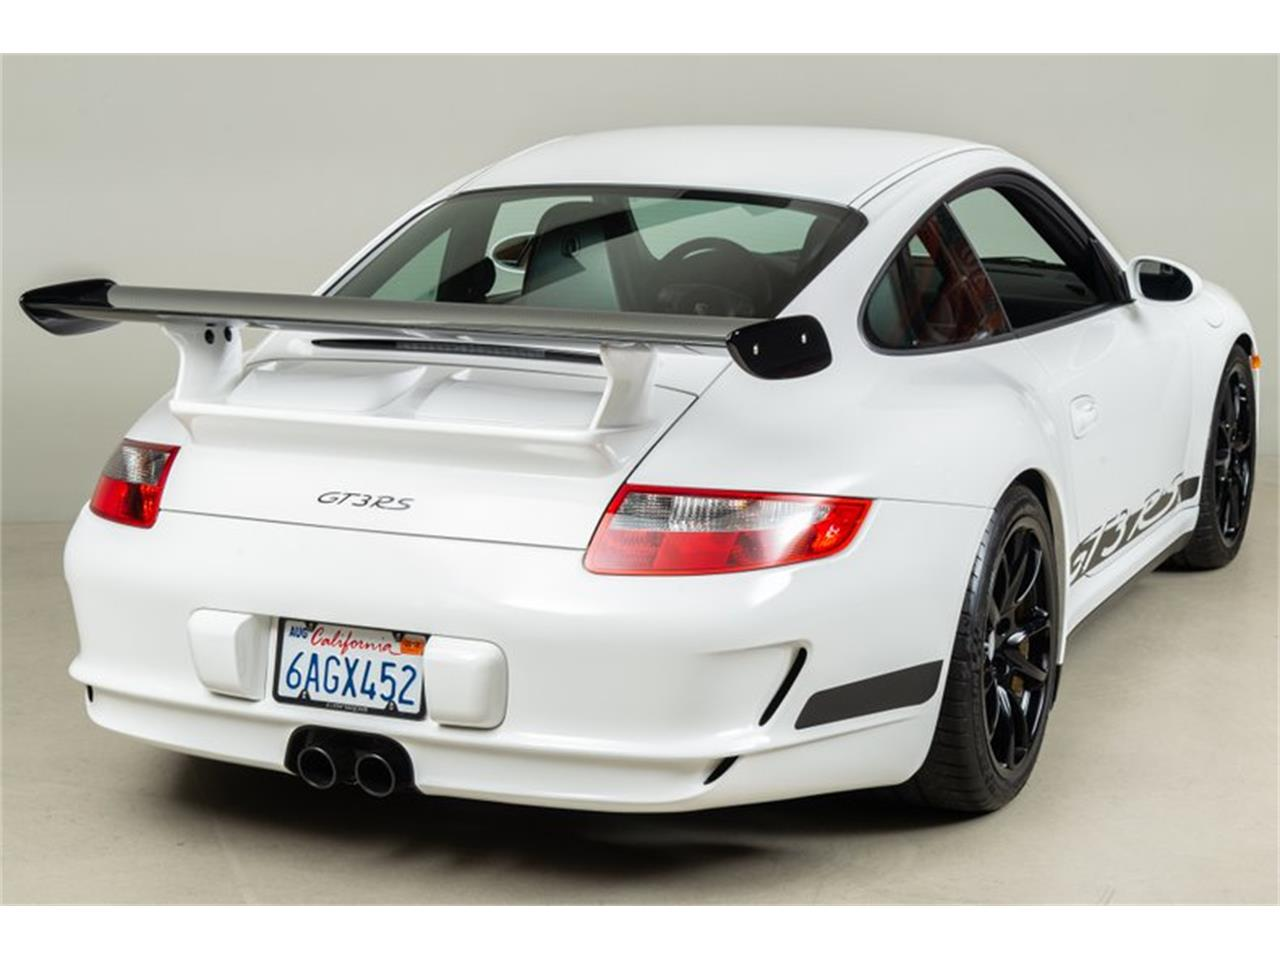 Large Picture of '07 911 located in Scotts Valley California Auction Vehicle - QTBQ